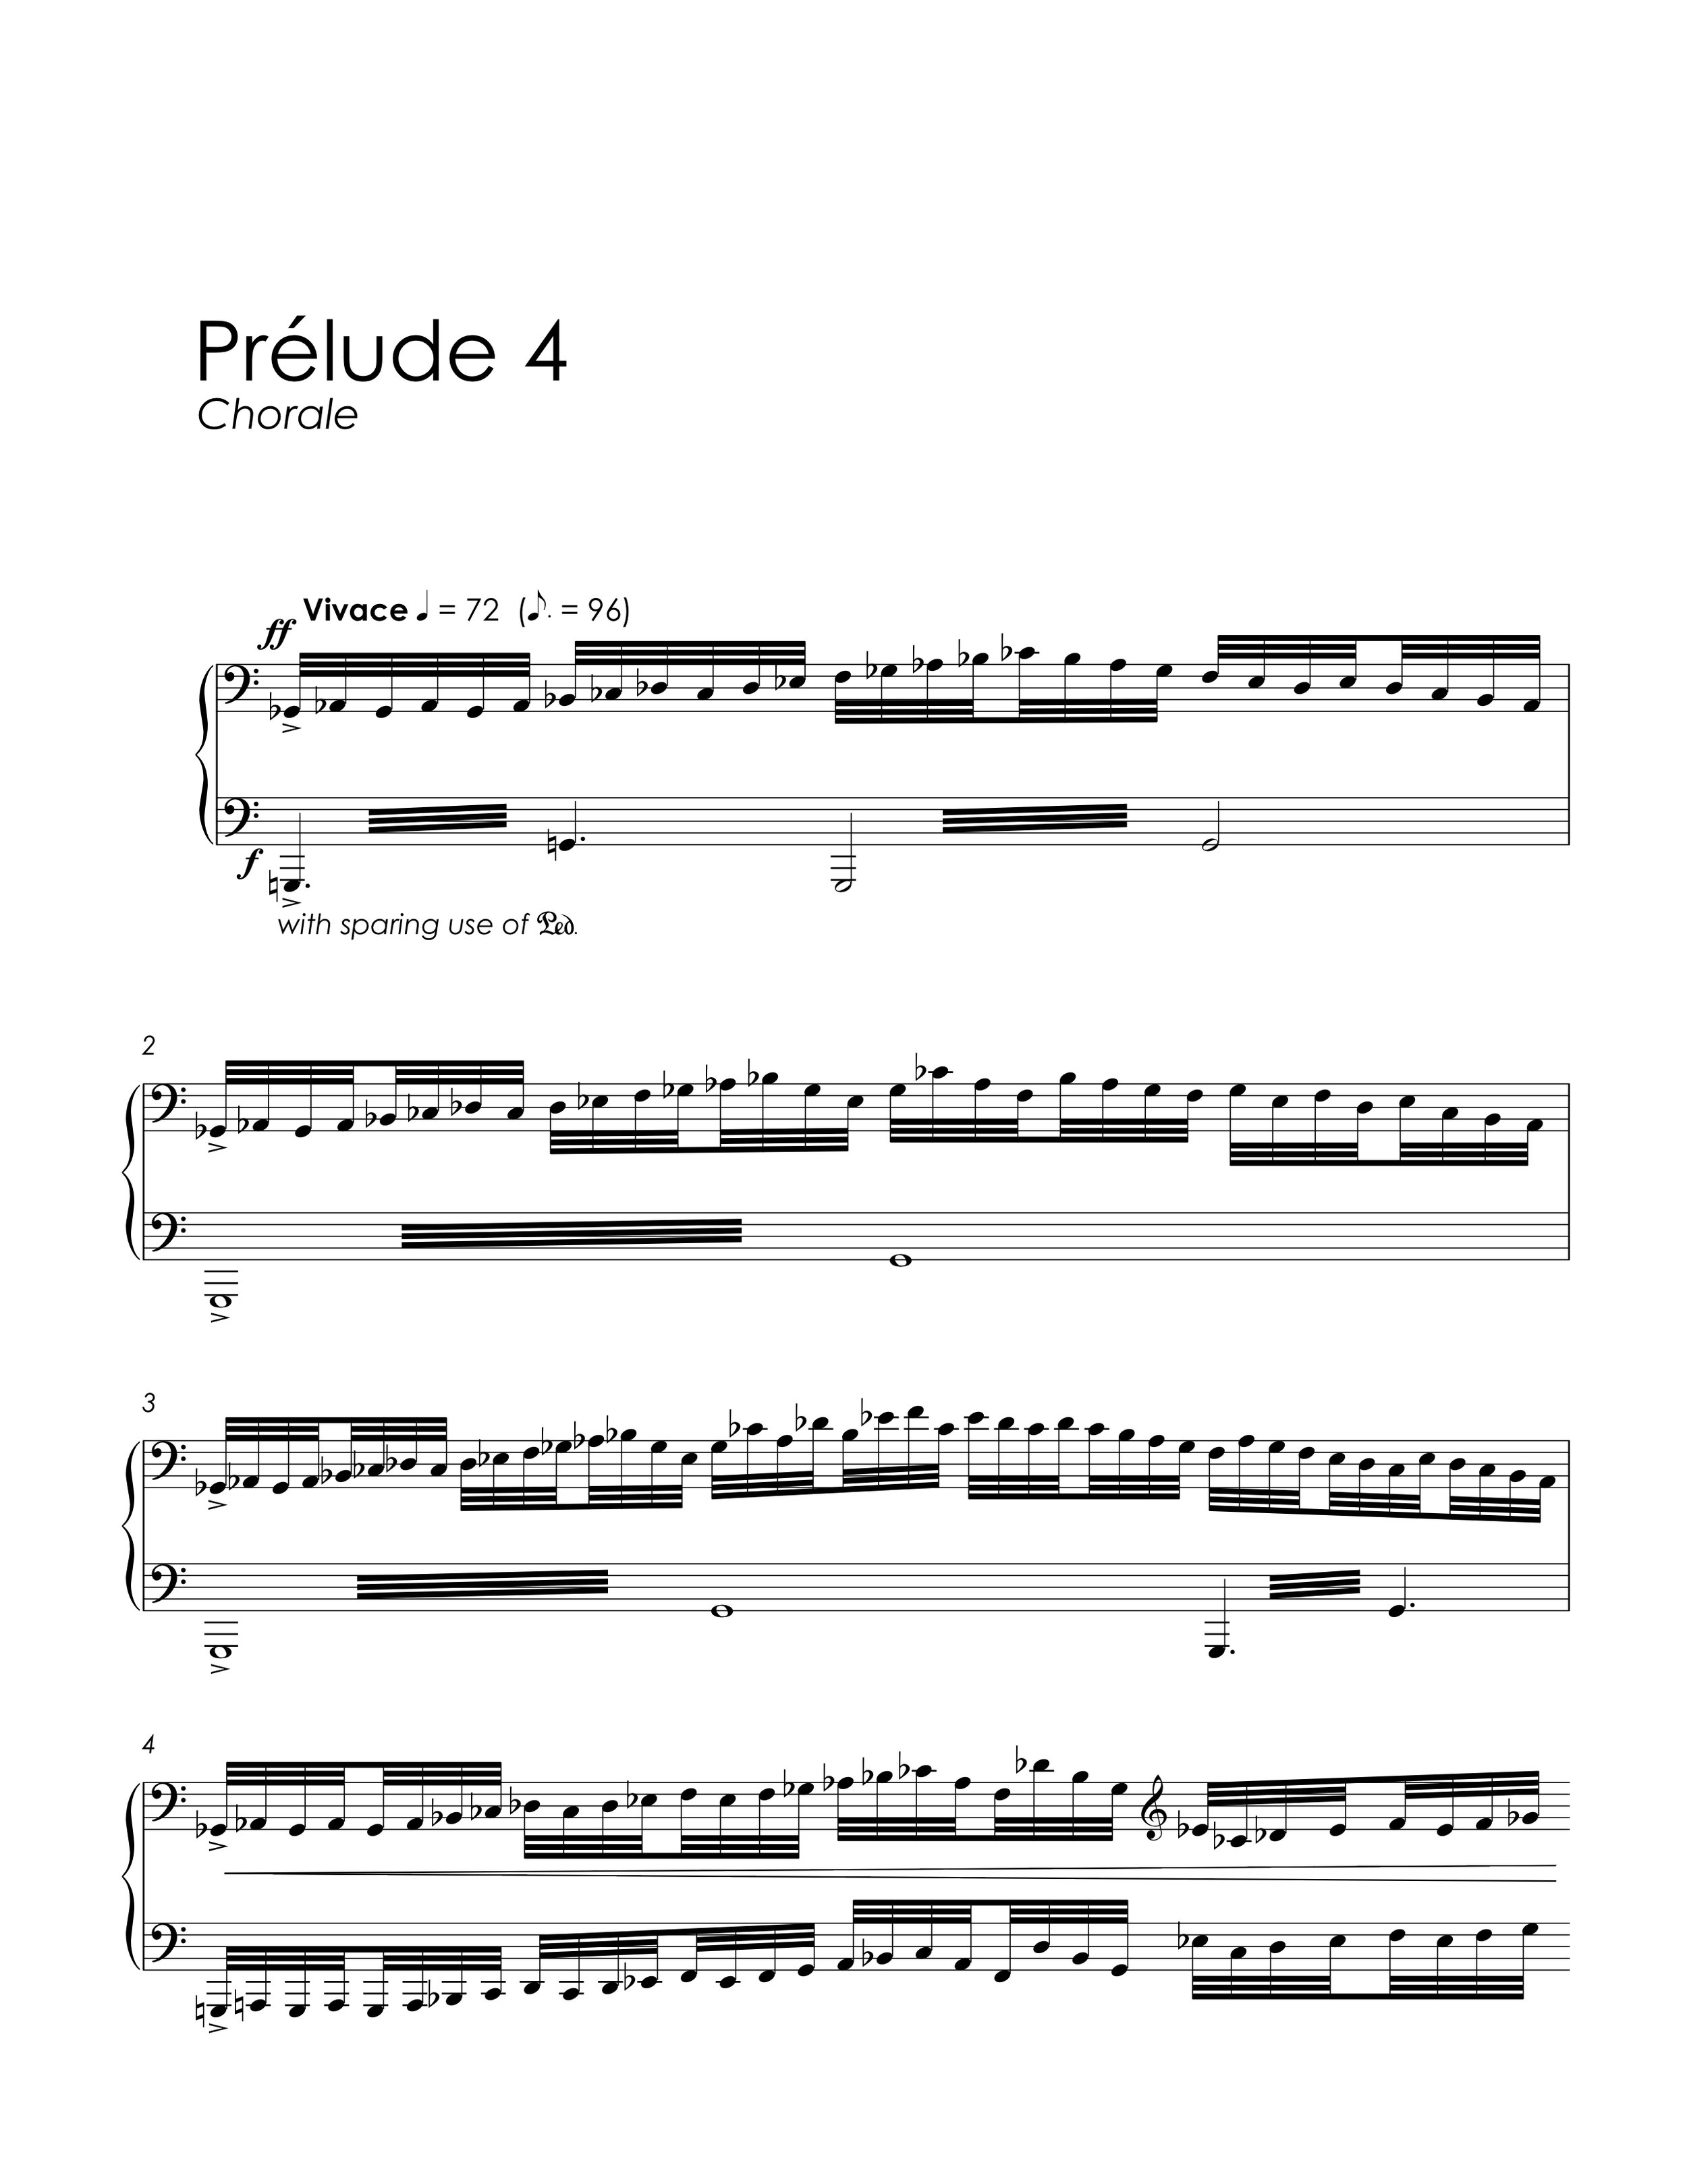 Préludes Sample 9.jpg